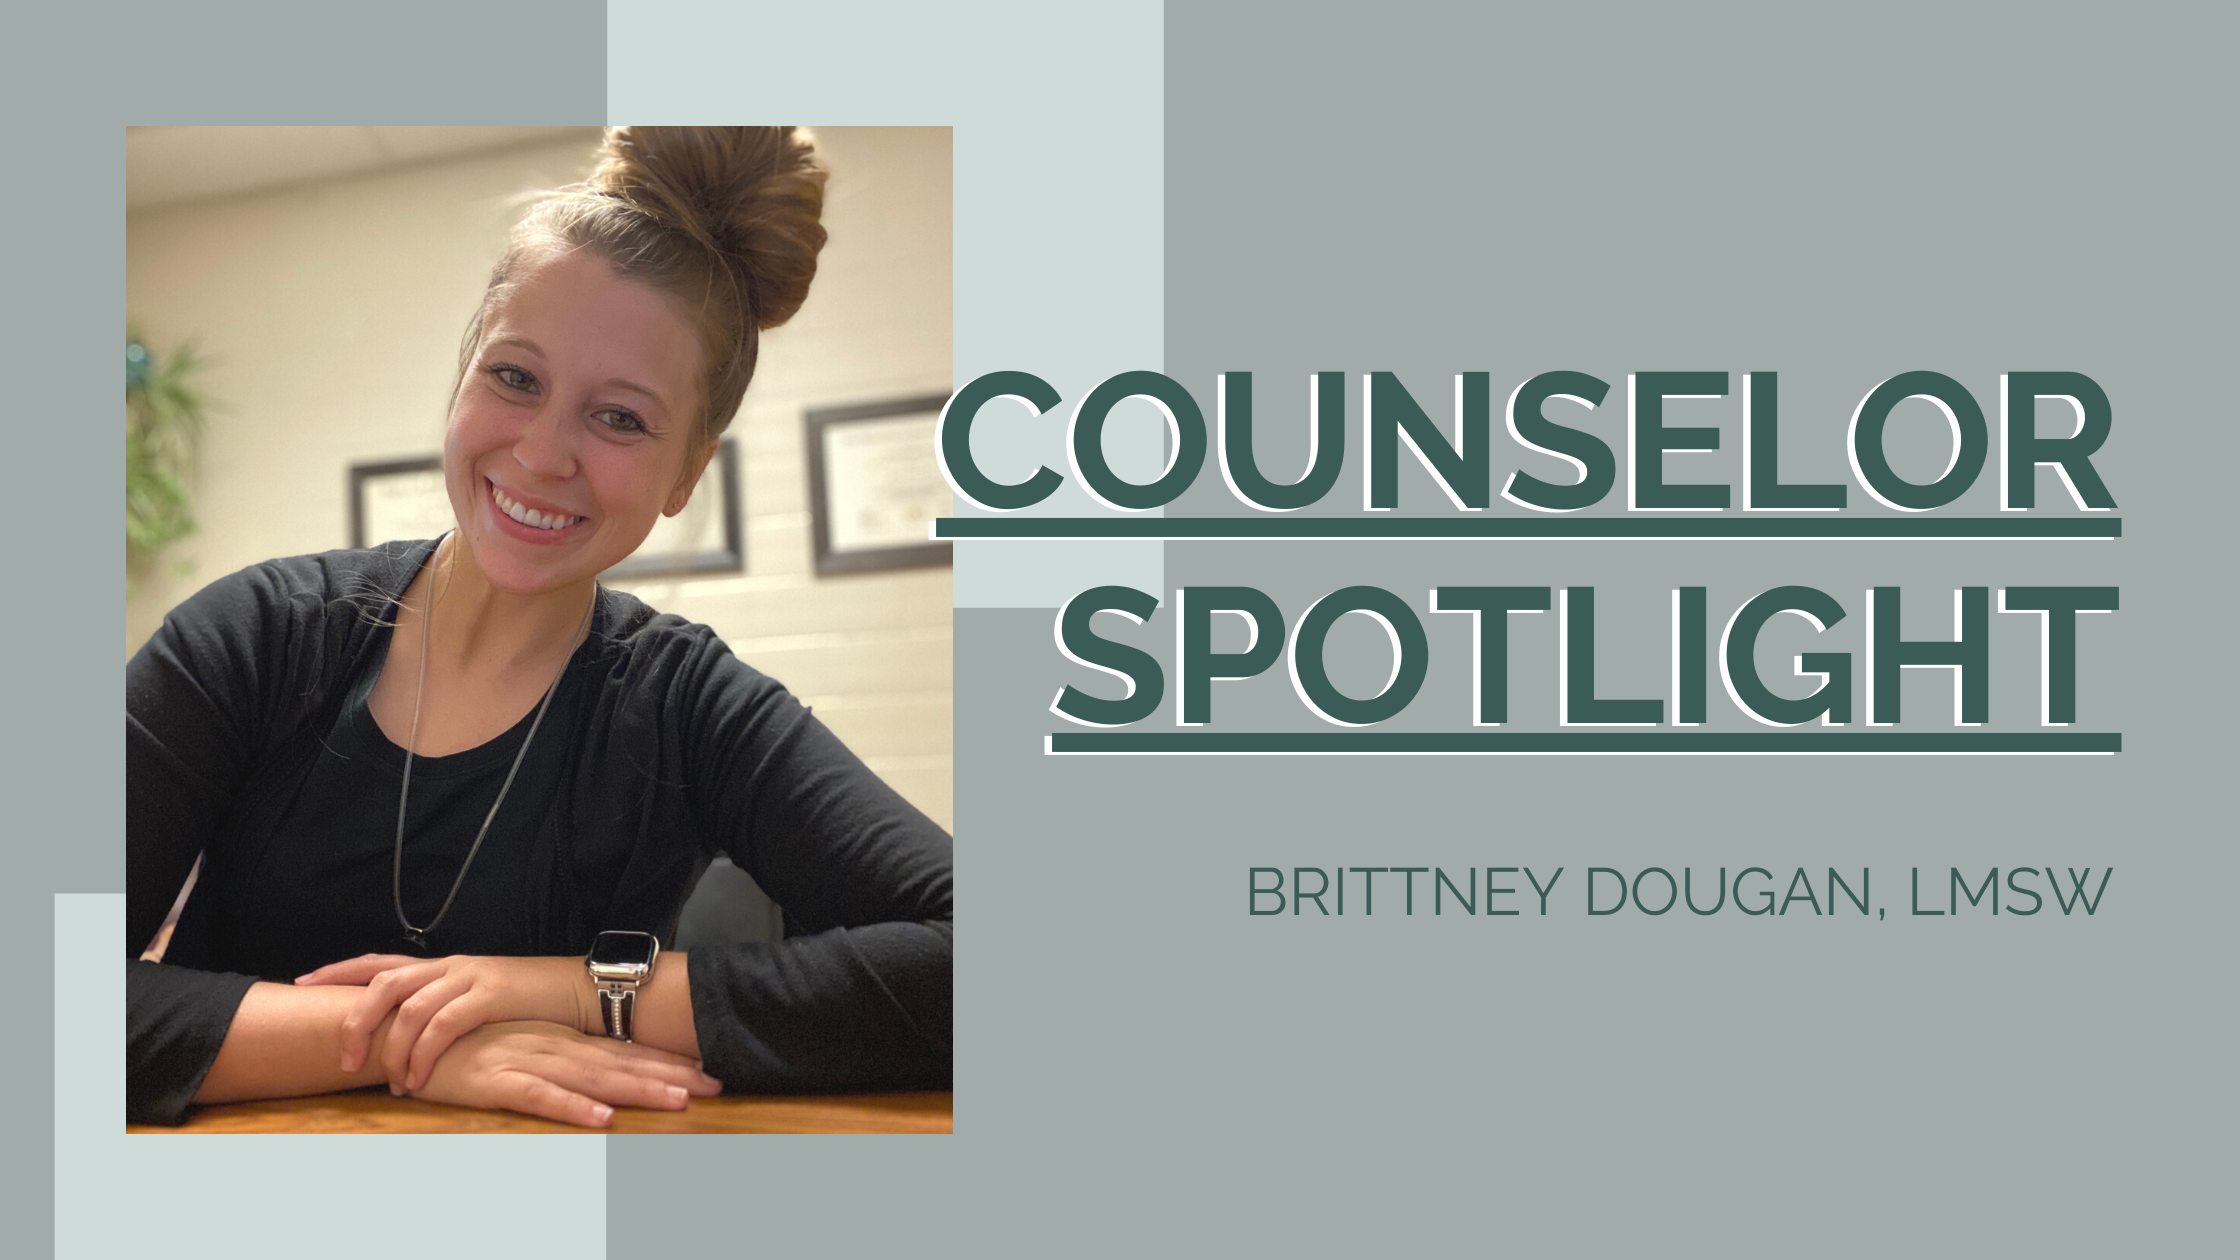 Image of Brittney Dougan, counselor spotlight